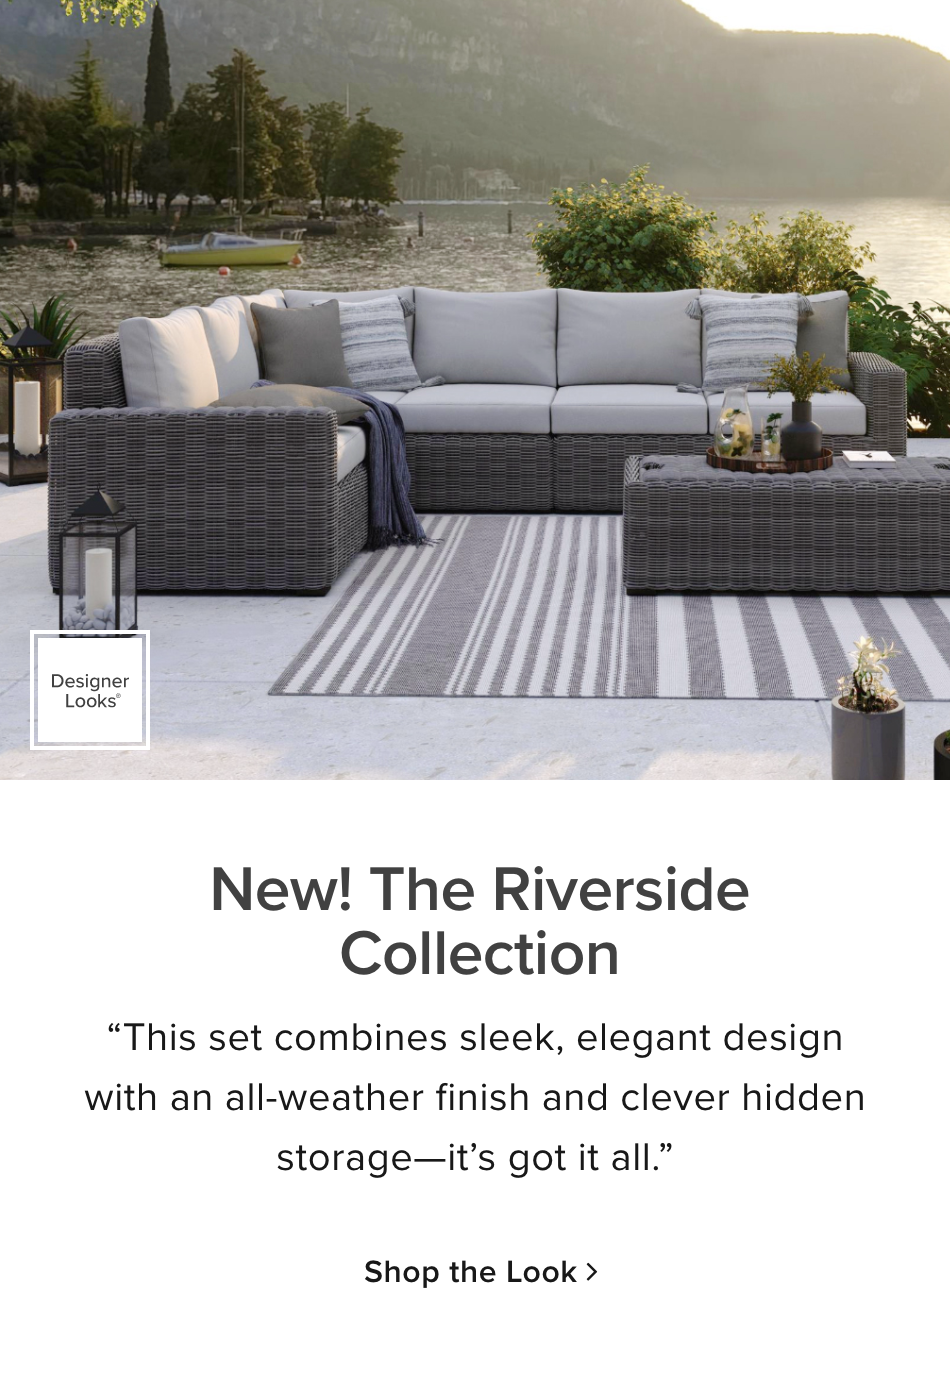 Riverside Collection